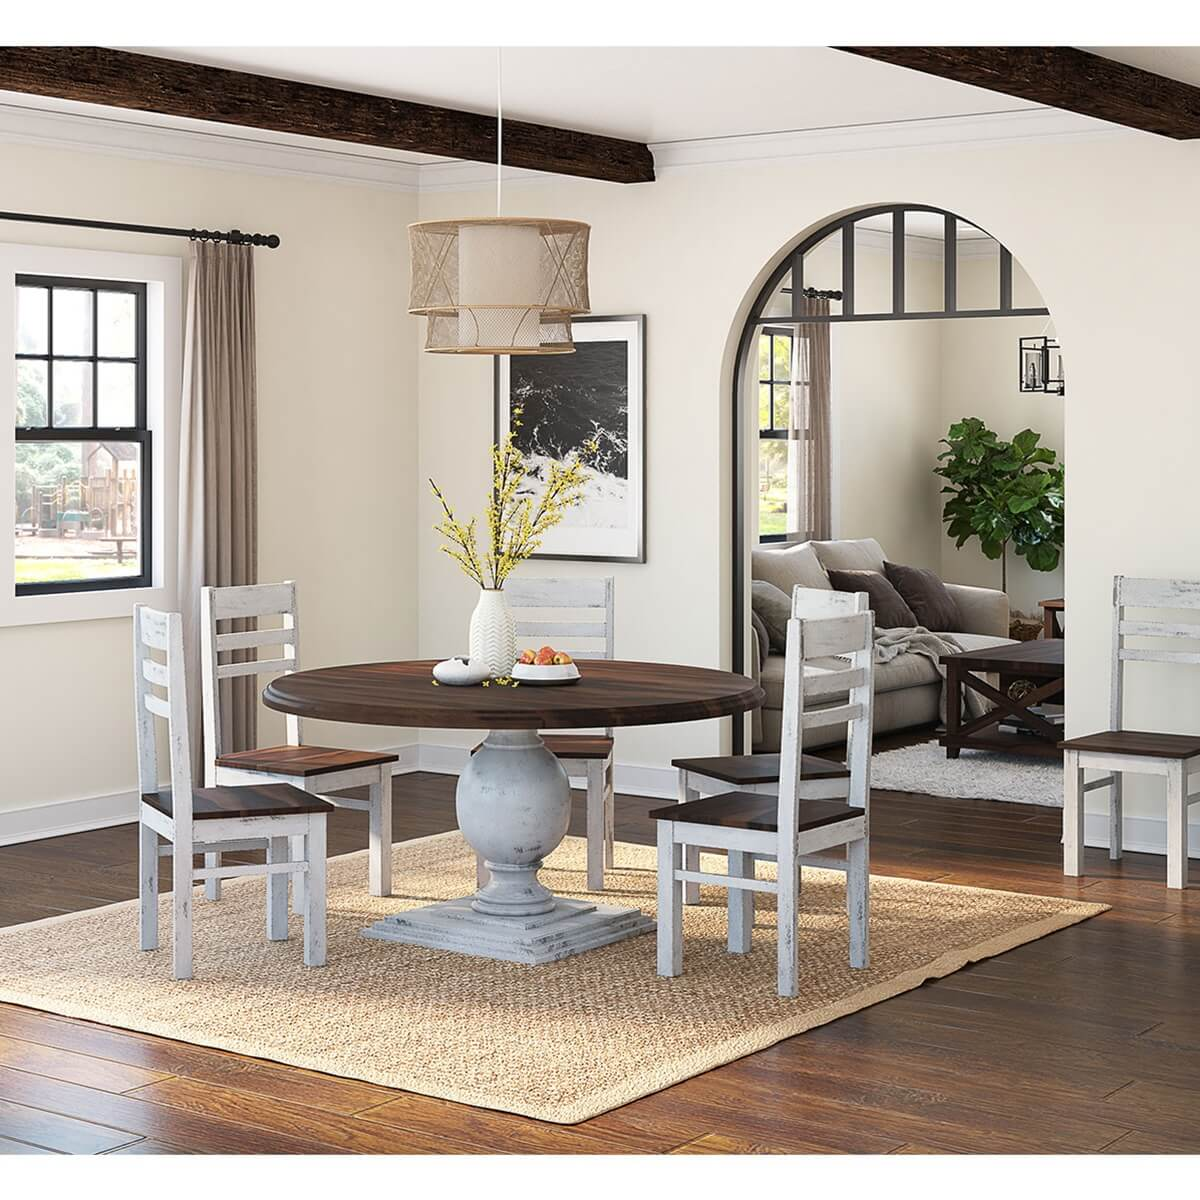 Illinois Modern Two Tone Large Round Dining Table With 8